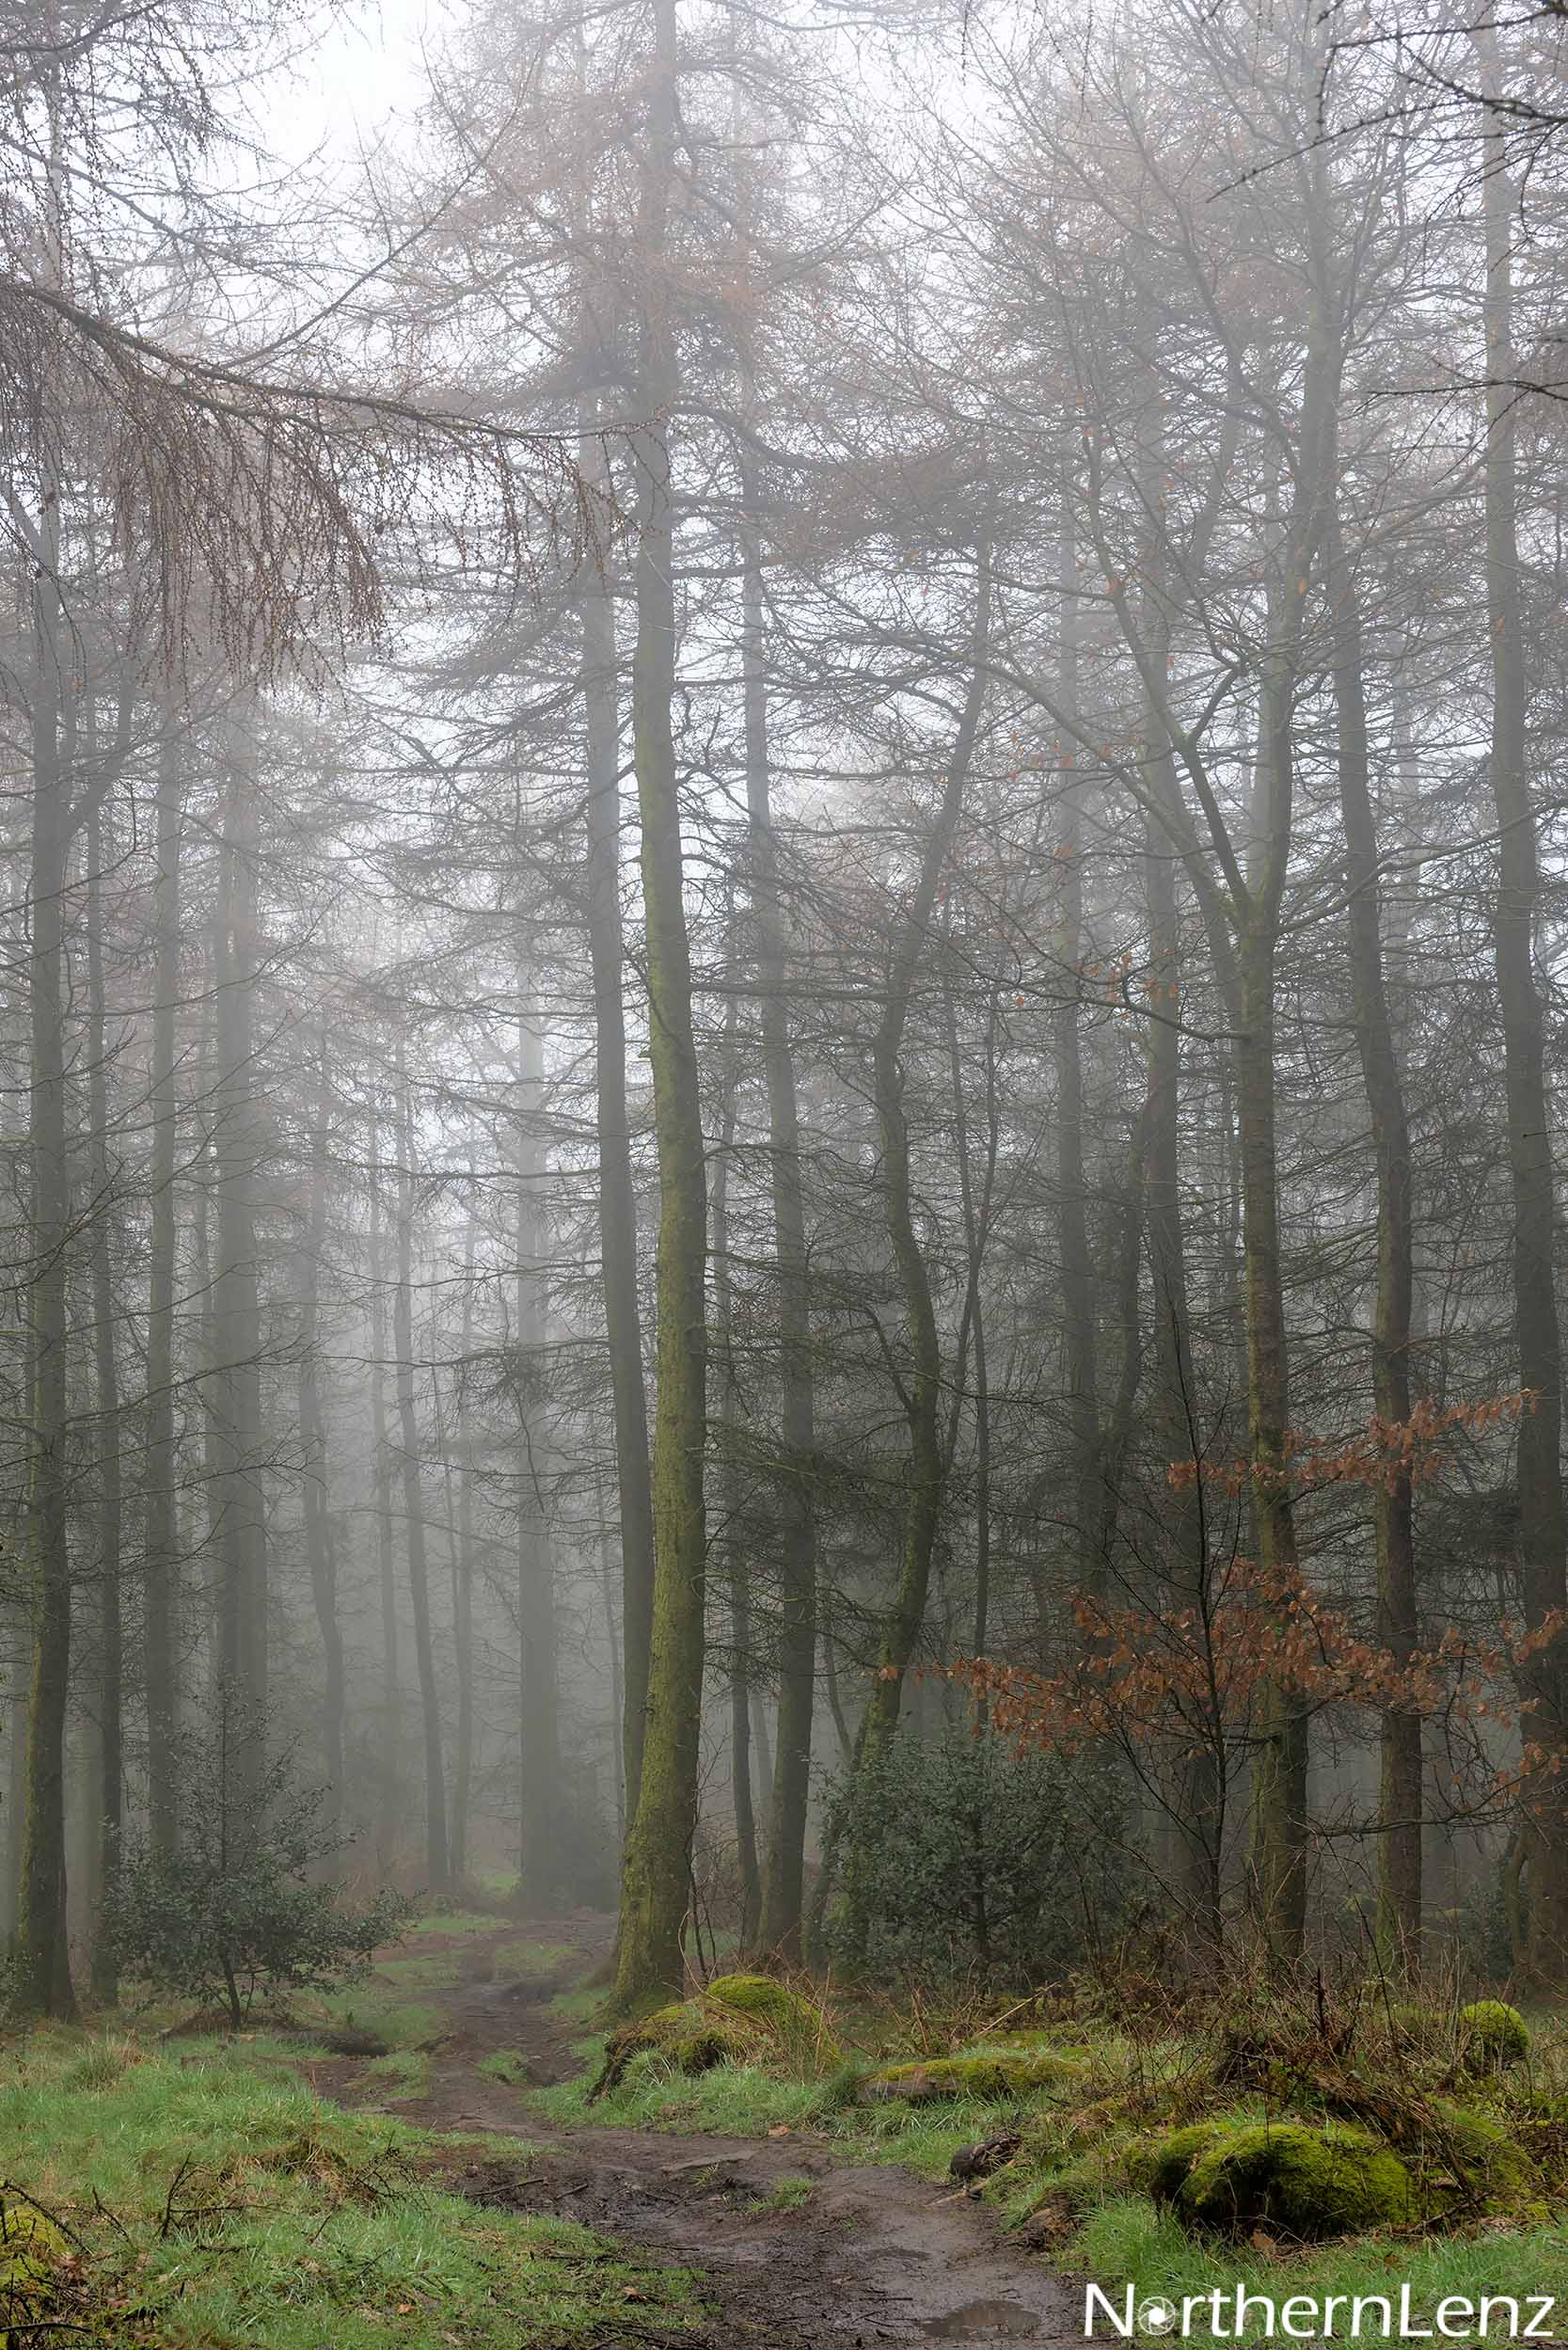 Venturing into the mist woods at Healey Nab, Chorley.  Image Ref: MT09